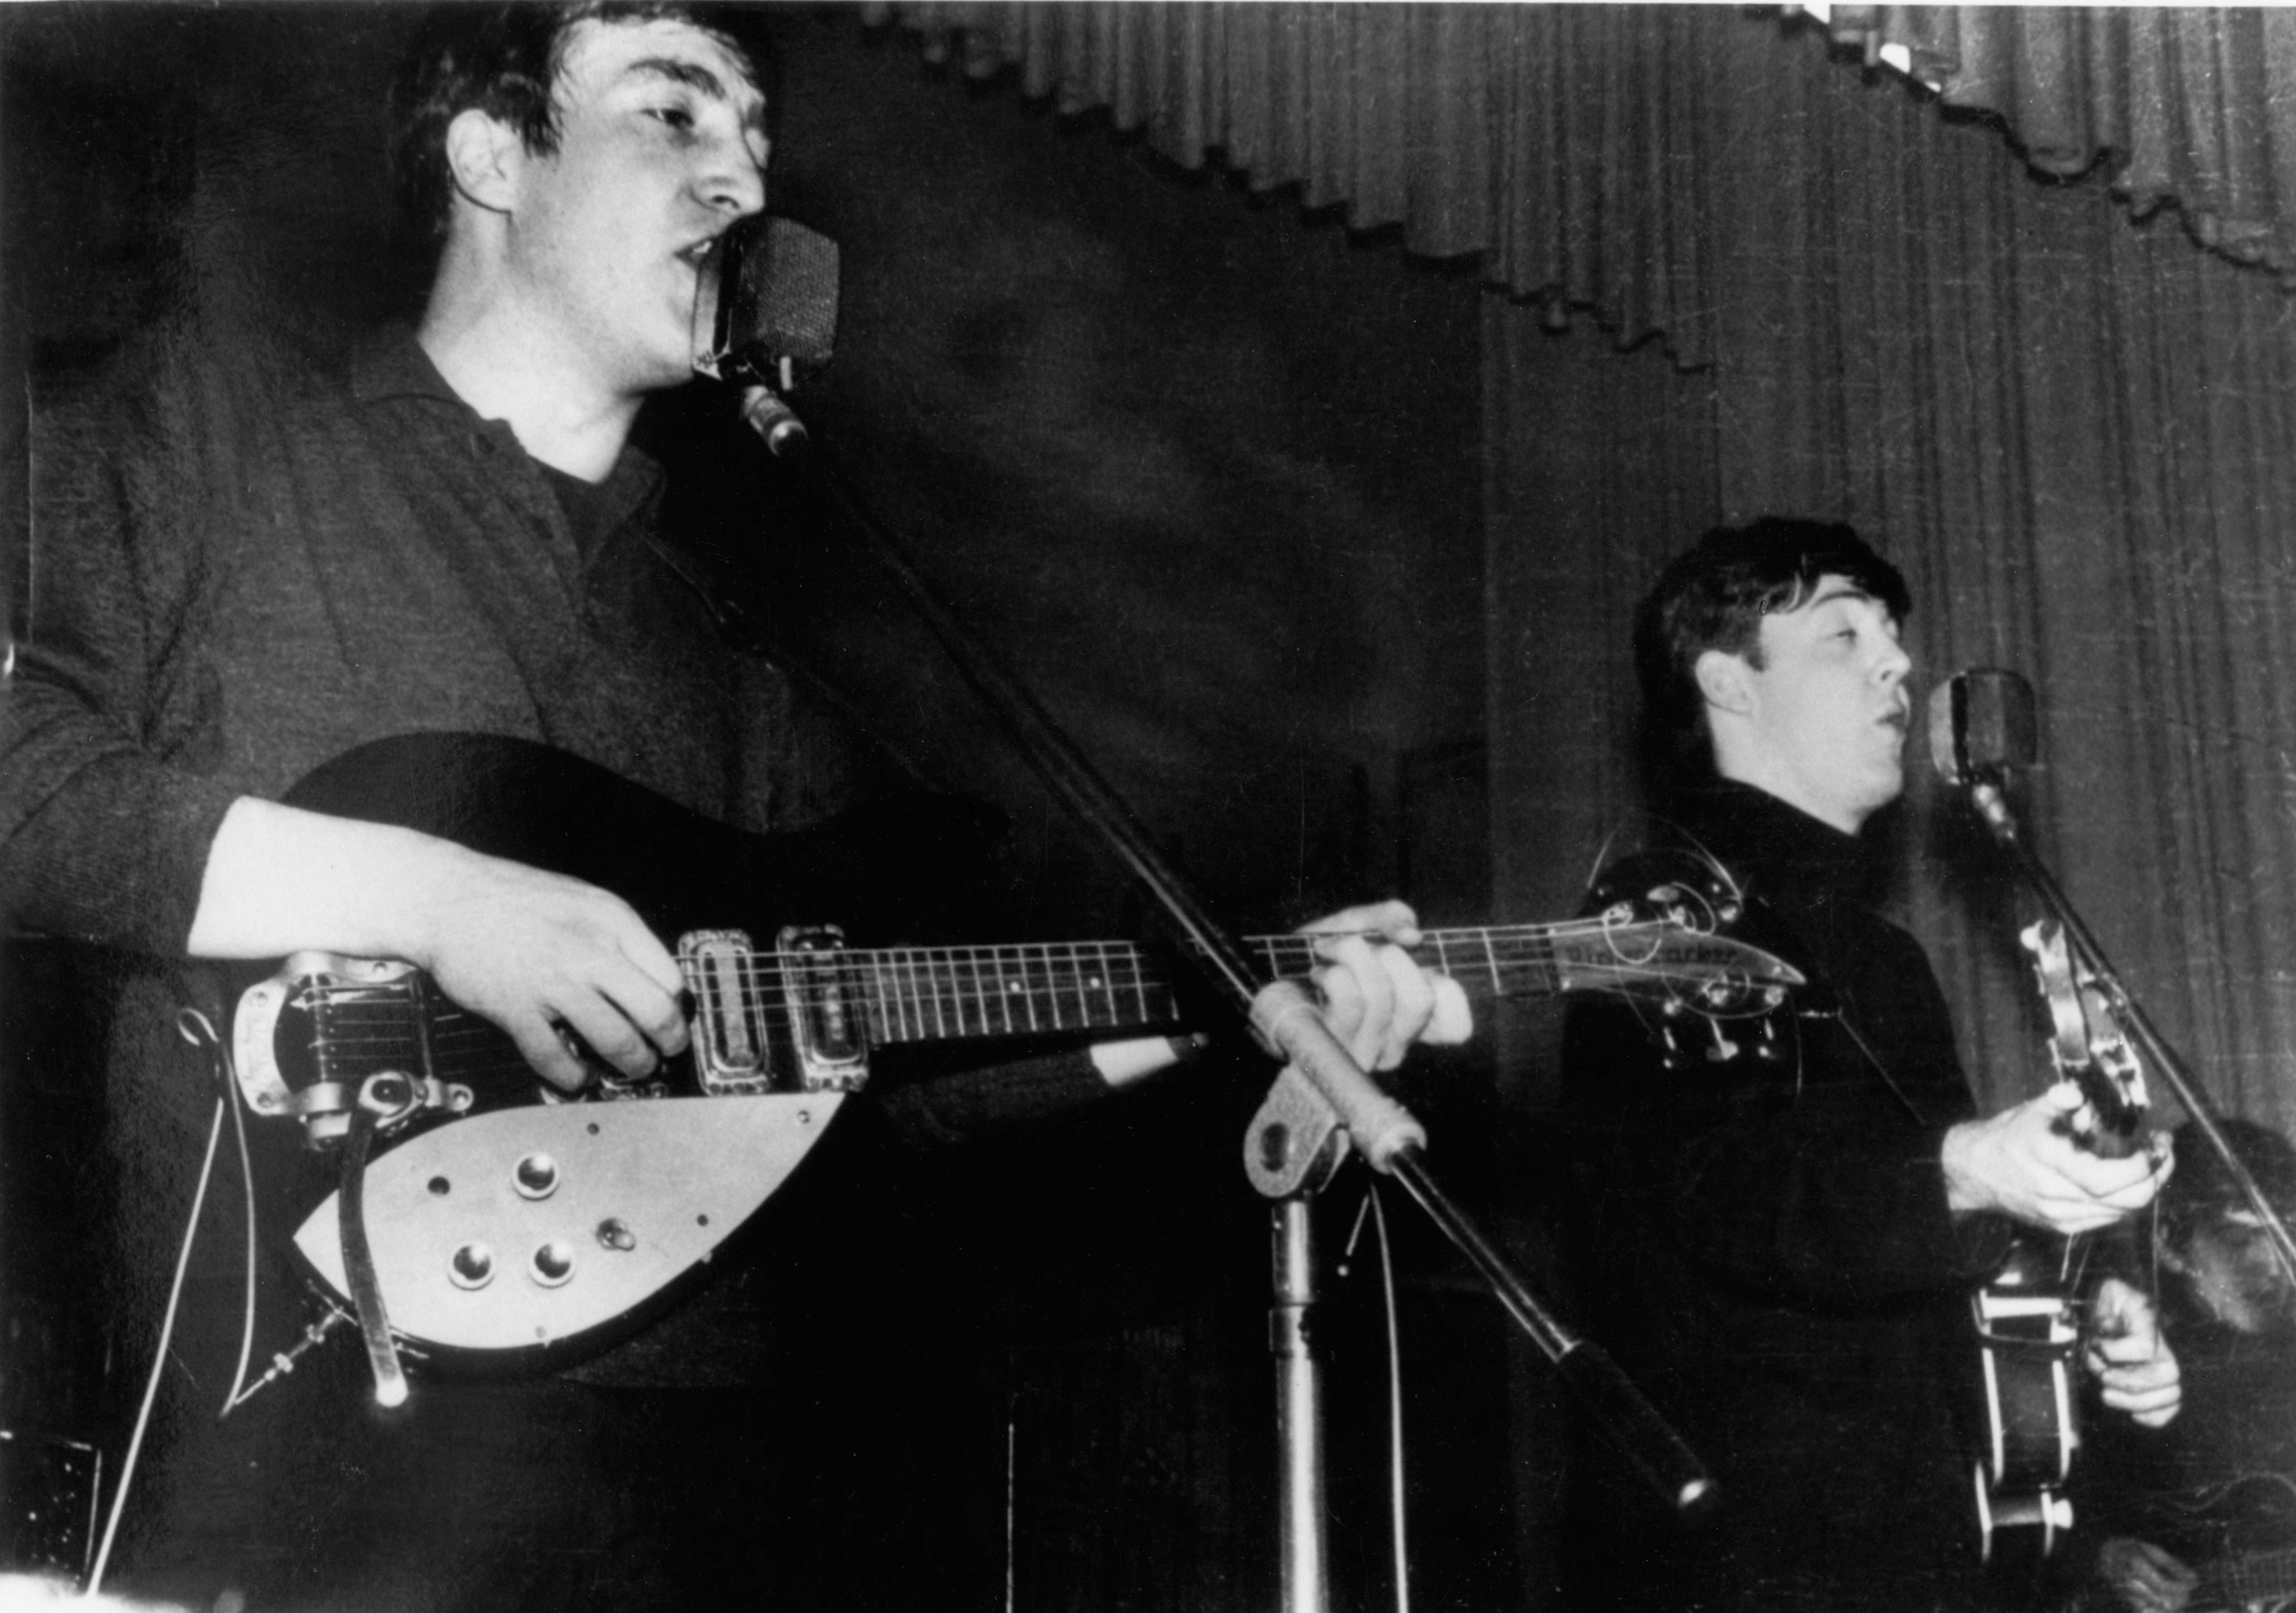 John Lennon Playing His First Rickenbacker 325 Guitar With Bigsby Vibrato Paul McCartney And George Harrison Of The Beatles Perform Live Onstage Circa